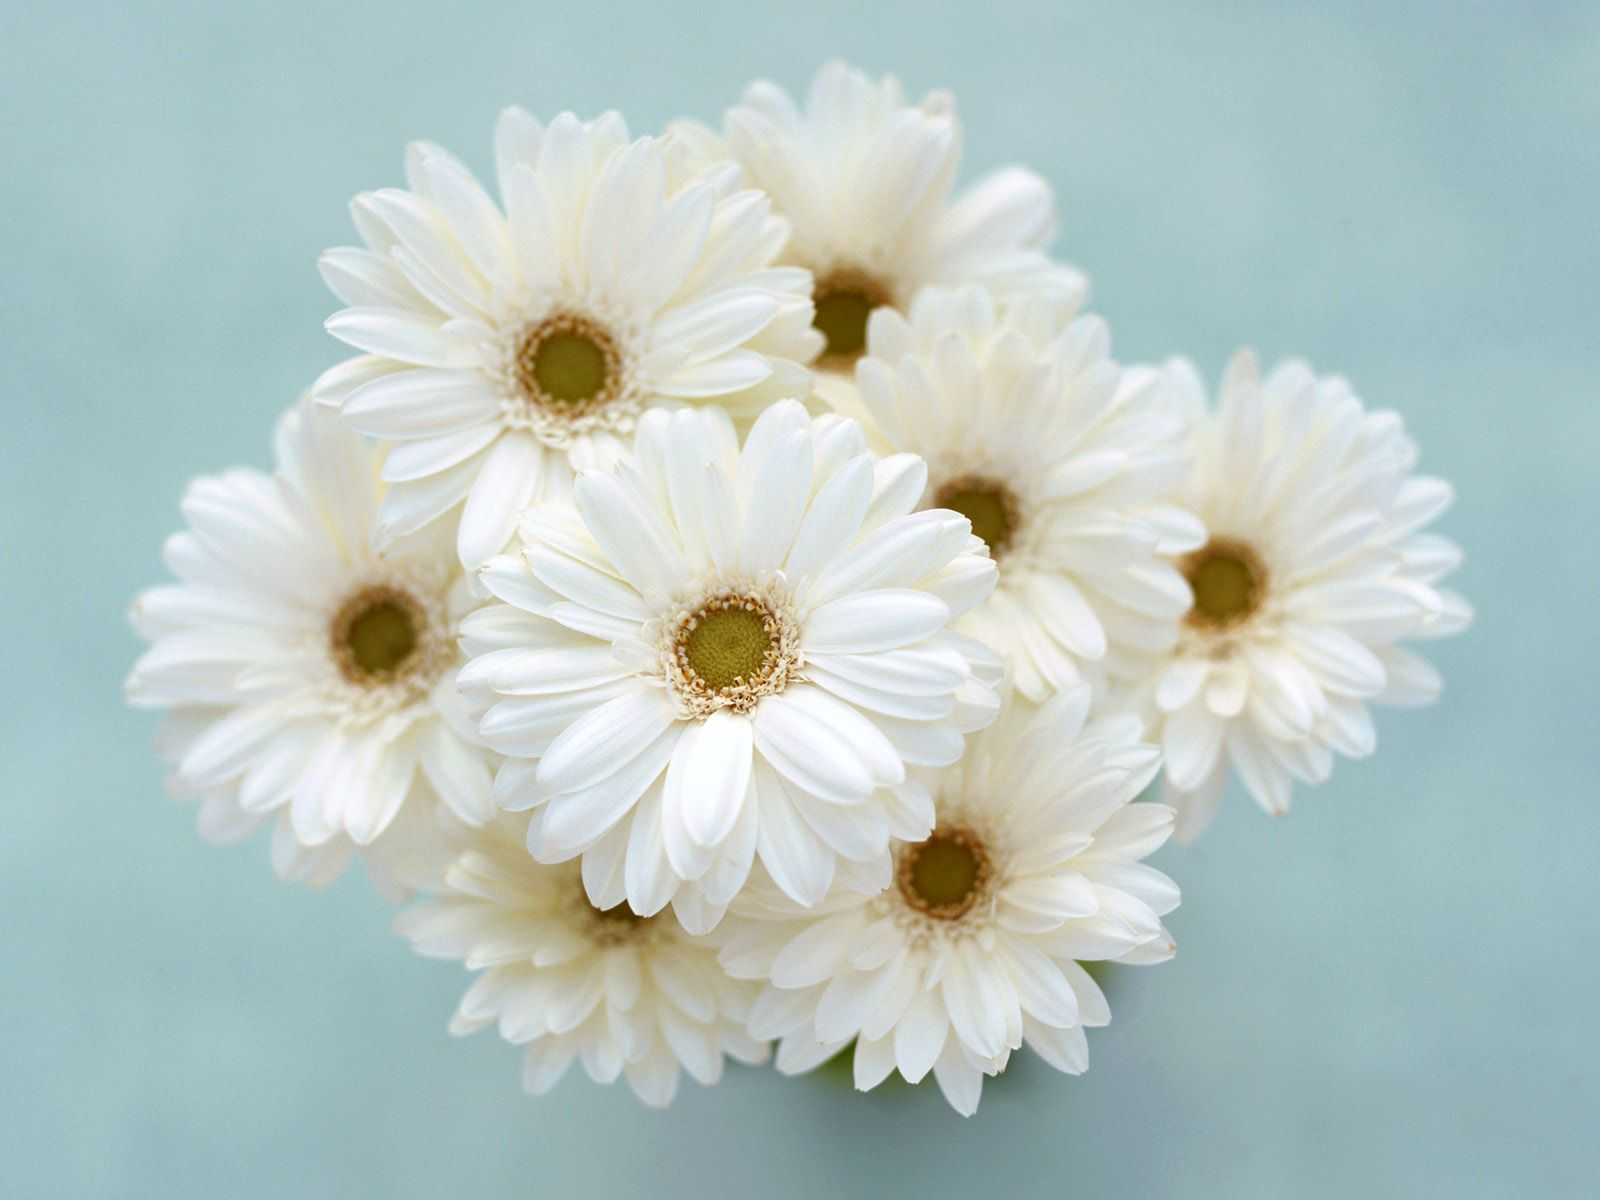 What Type Of Flower Is This White Flower Bouquet White Flowers Flowers